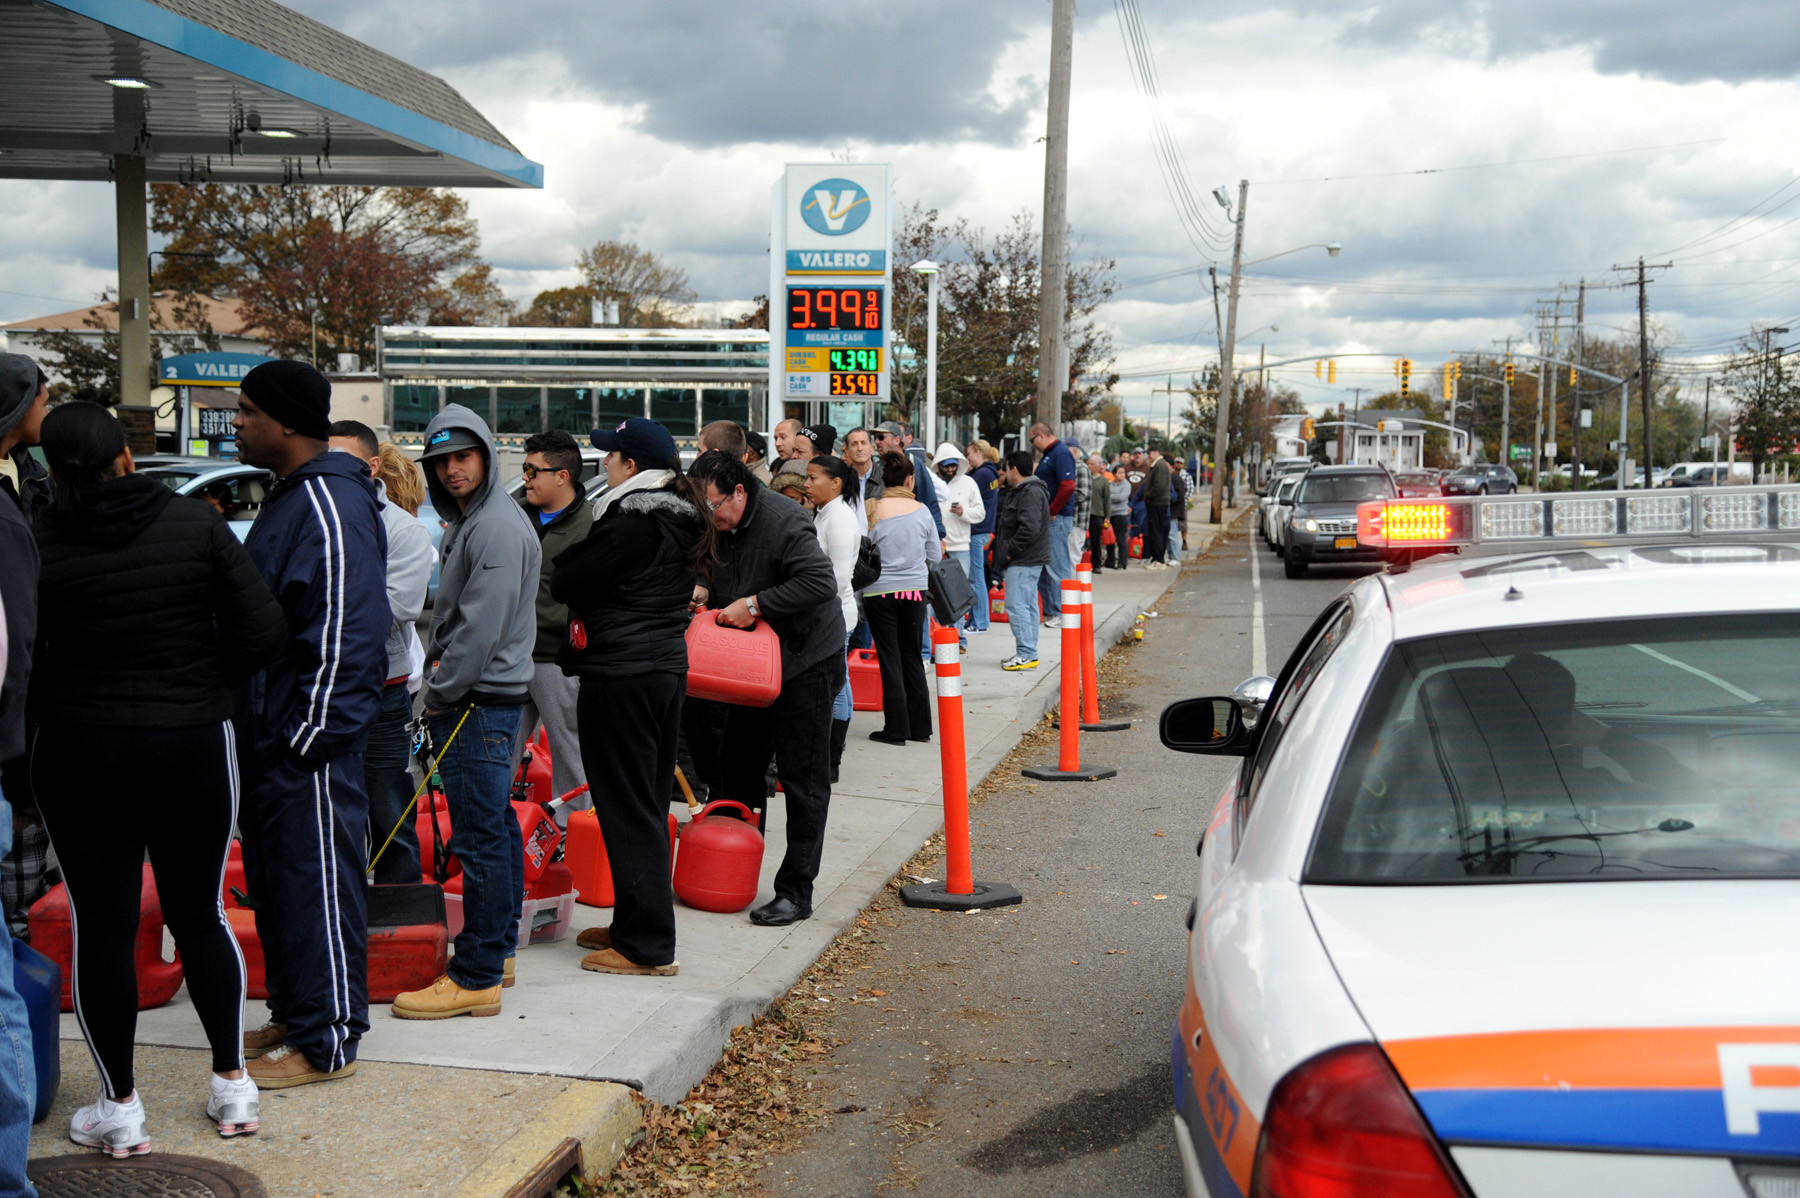 Lengthy gasolines lines were commonplace across Nassau County following last October's Hurricane Sandy.